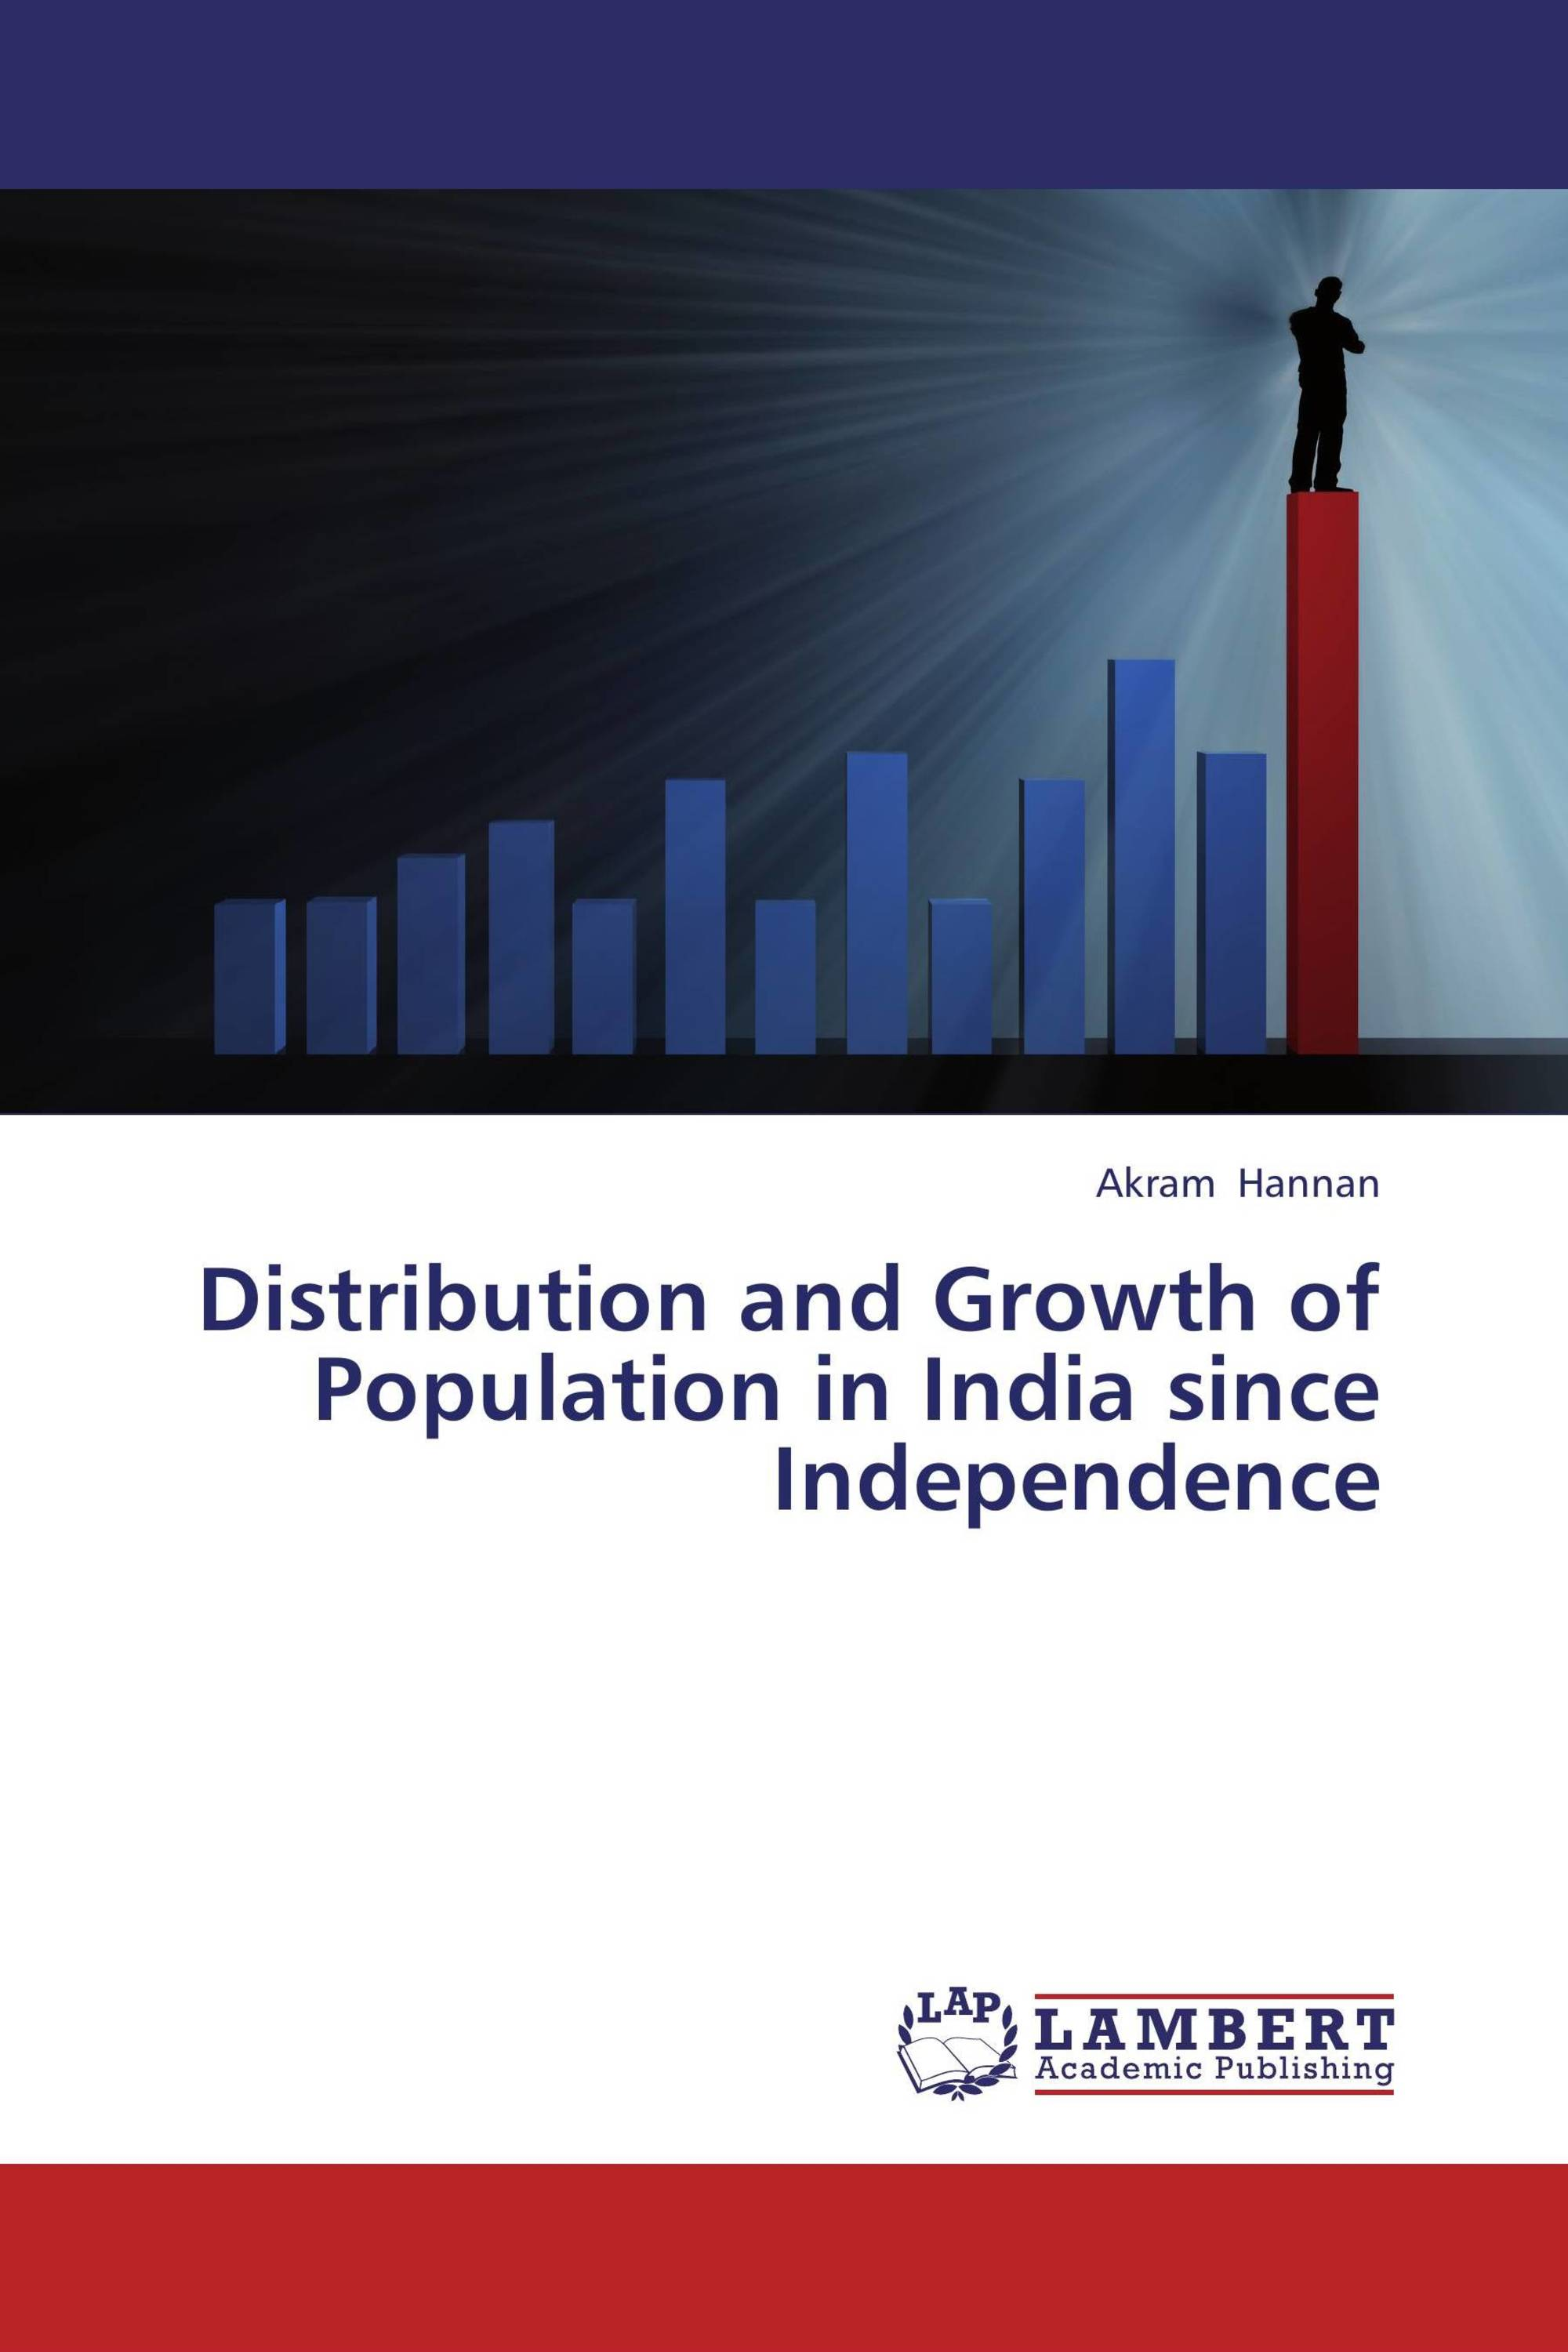 cause and effect of population growth in india The results showed the depletion effect on national income from increased population growth prior to 1978, the economic depletion in china was due to the impact of the marginal population and, after 1978, the depletion was due to increased consumption.